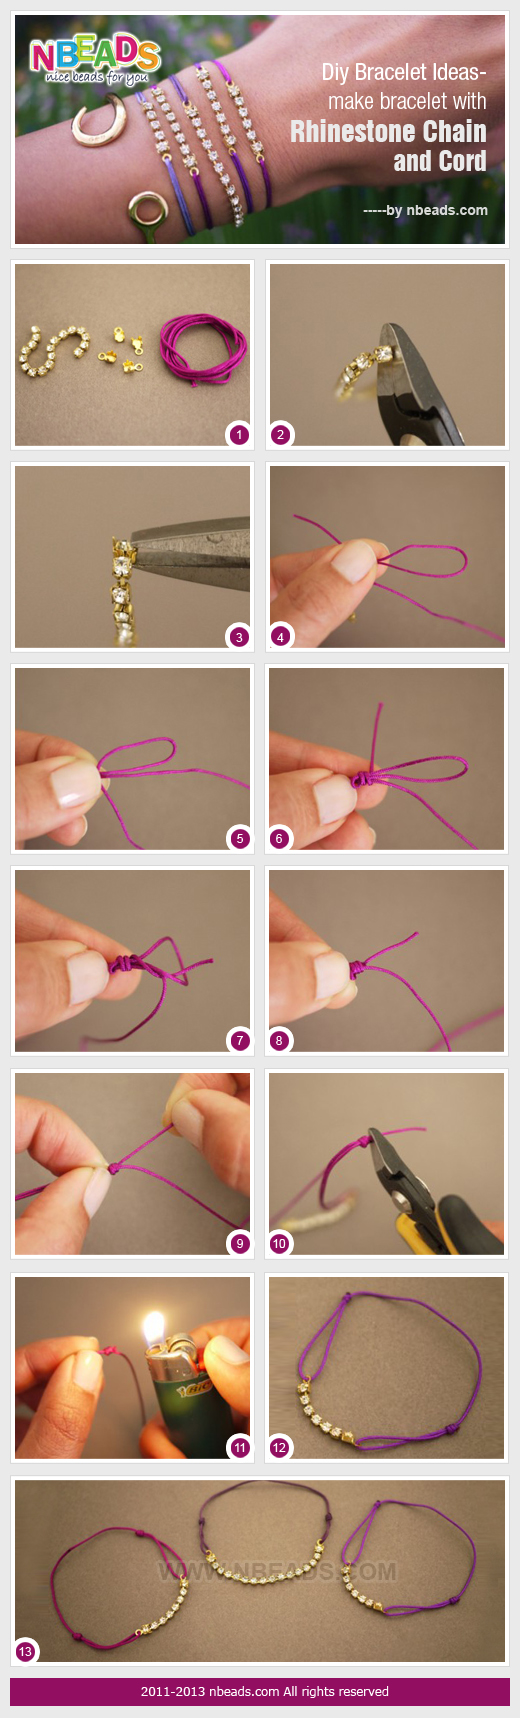 diy bracelet ideas-make bracelet with rhinestone chain and cord